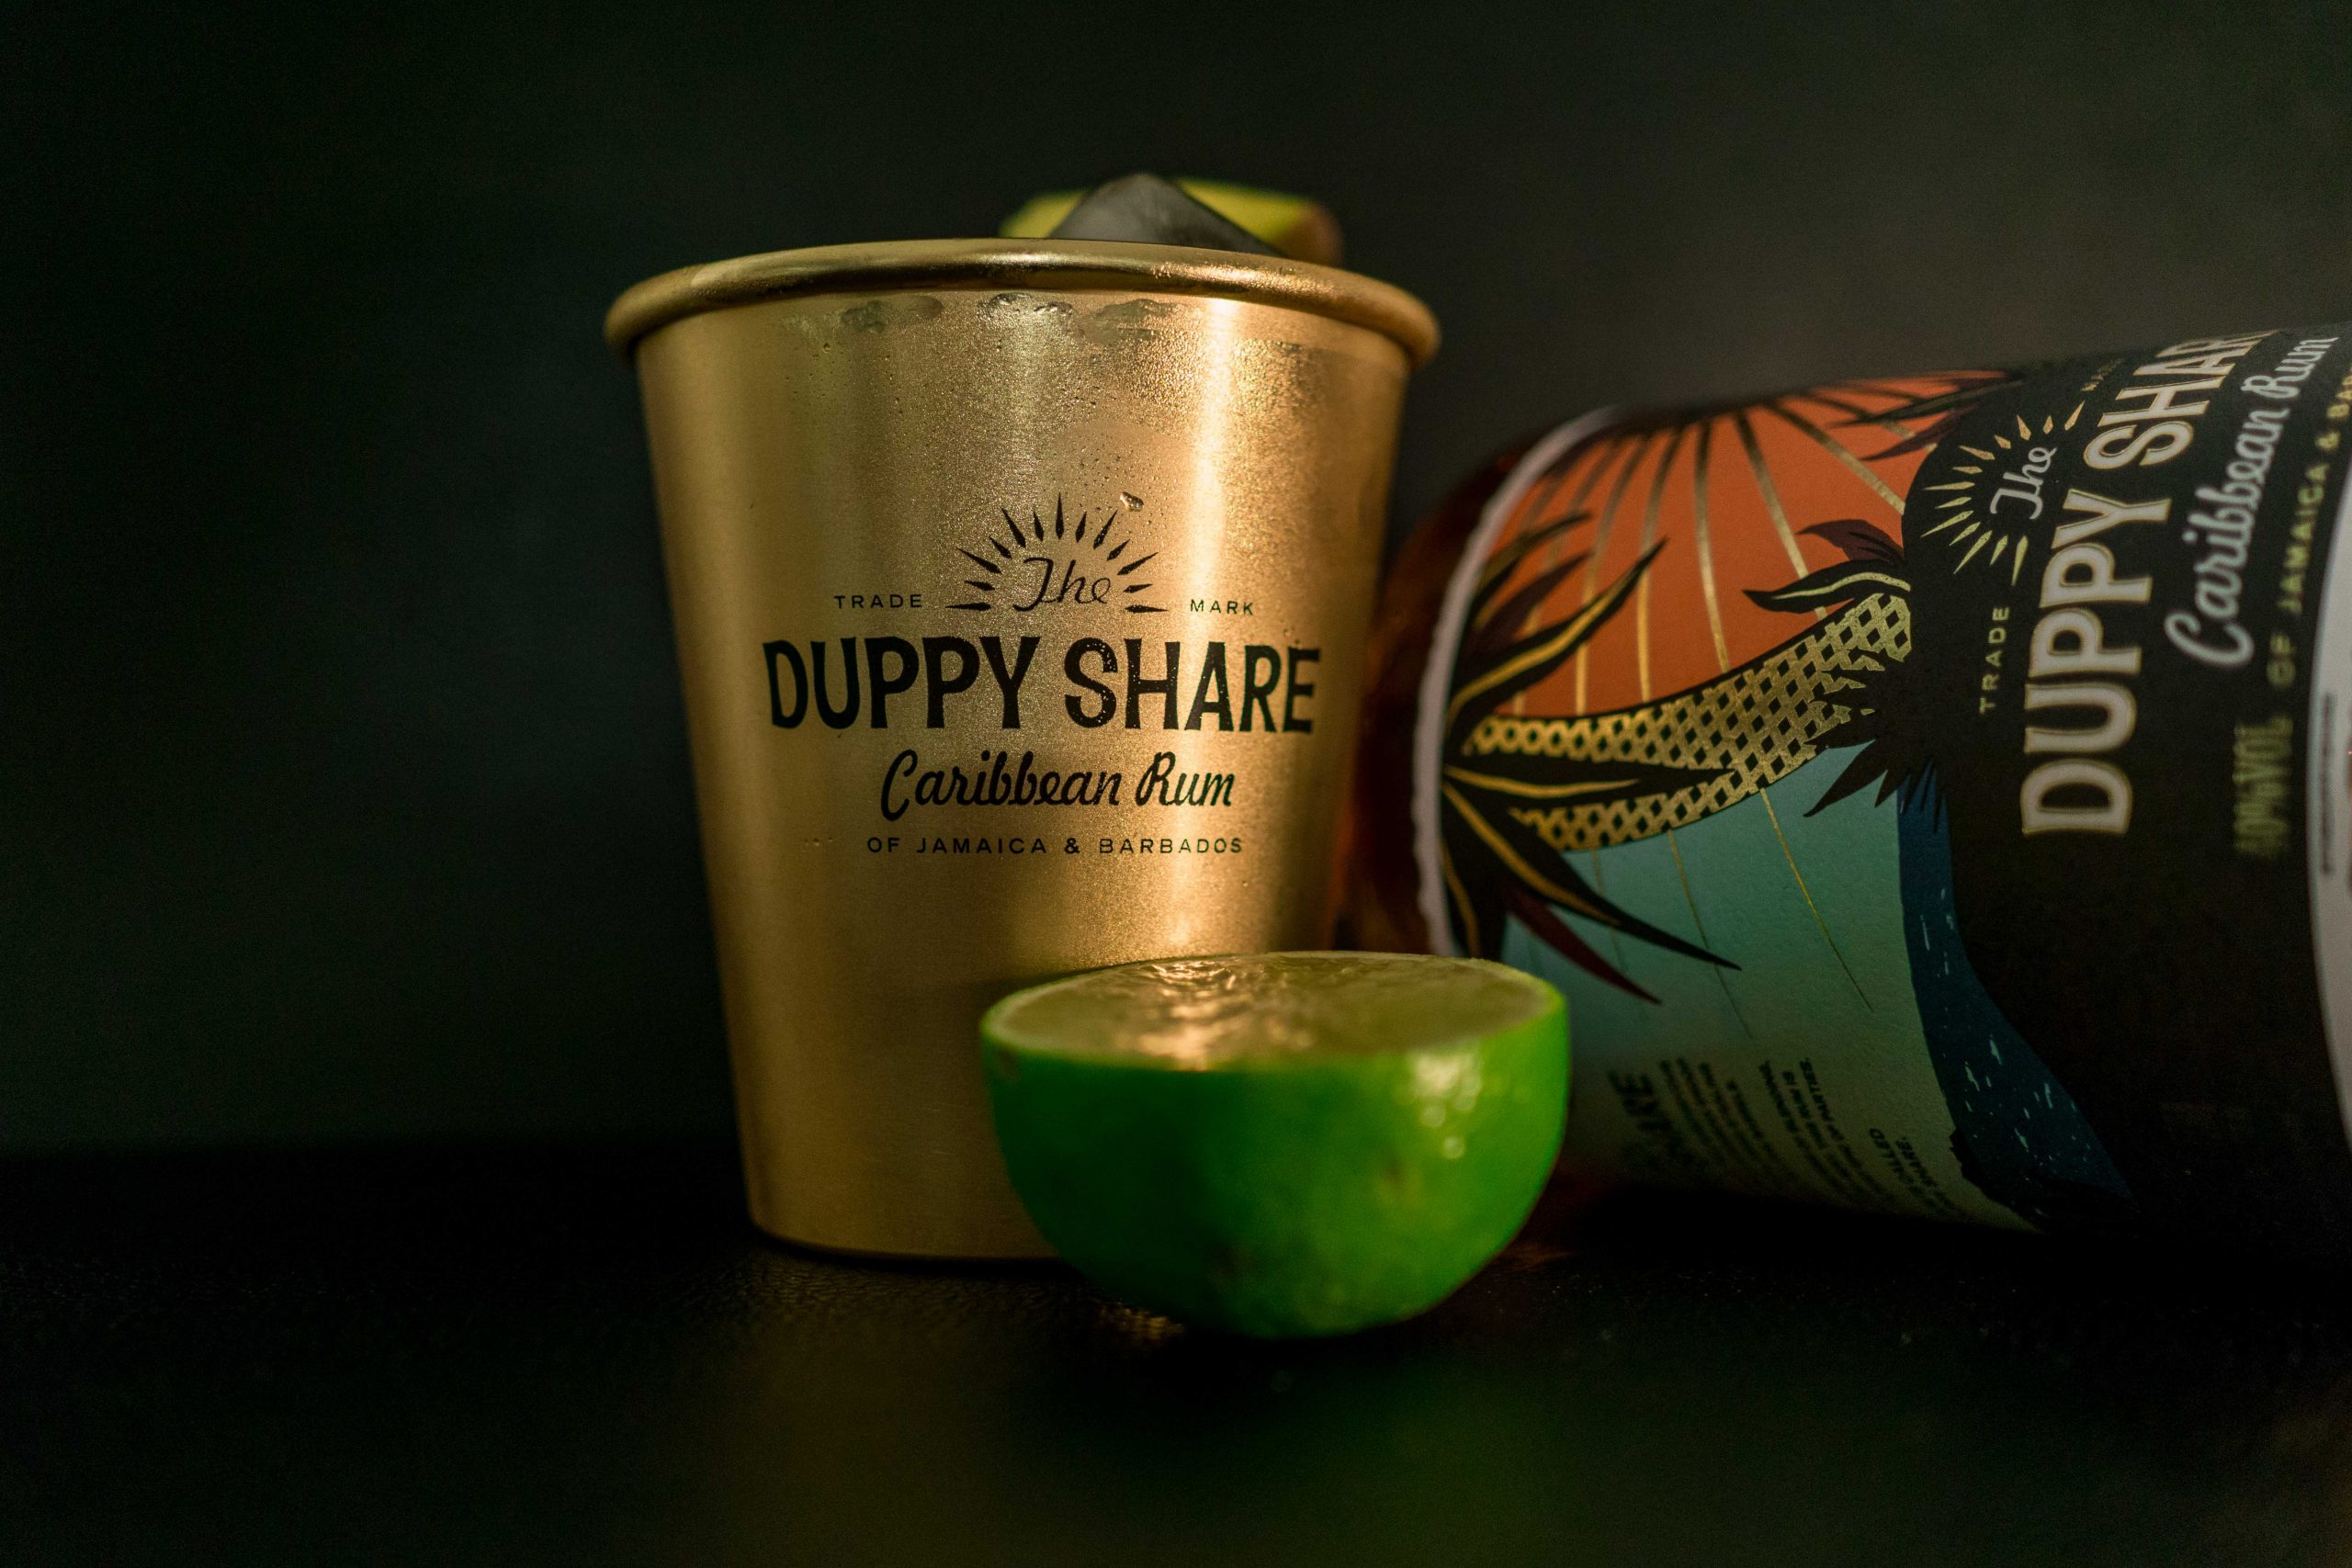 Cocktail recipe: Fresh mango fushion with Duppy Share